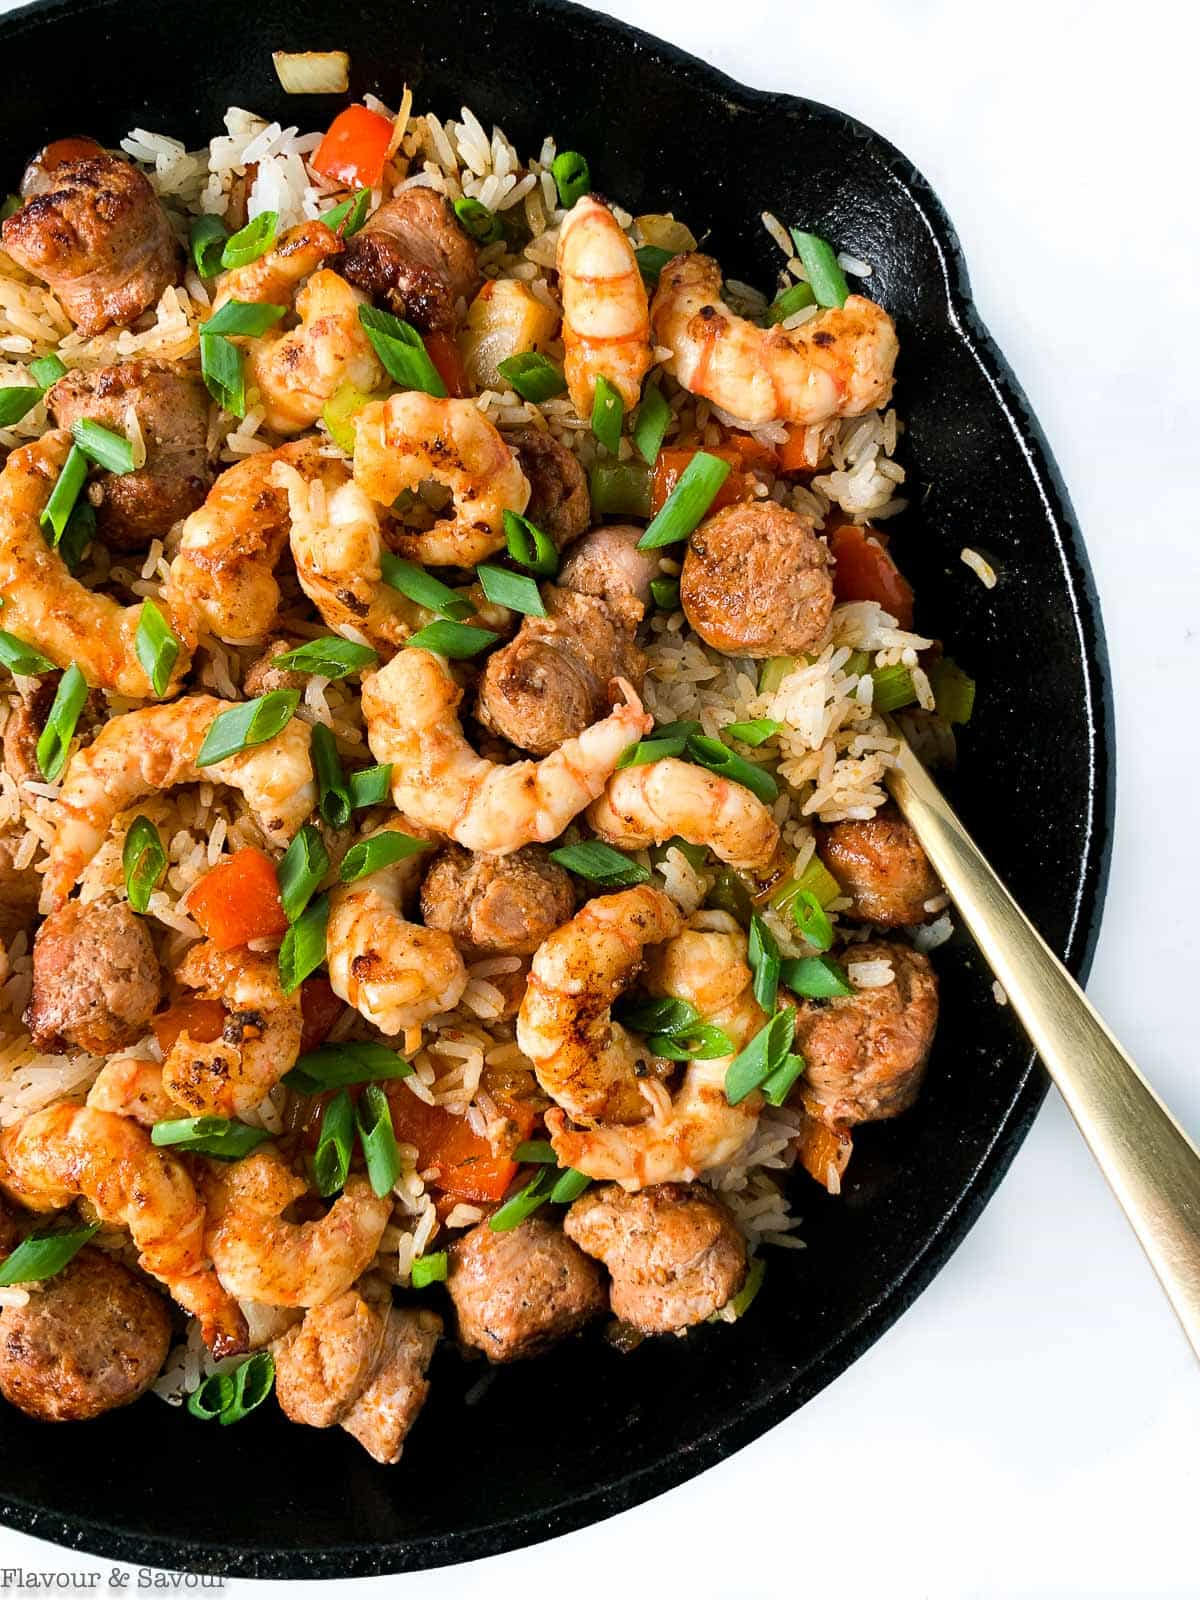 Close up view of a cast iron skillet with Cajun Shrimp Fried Rice